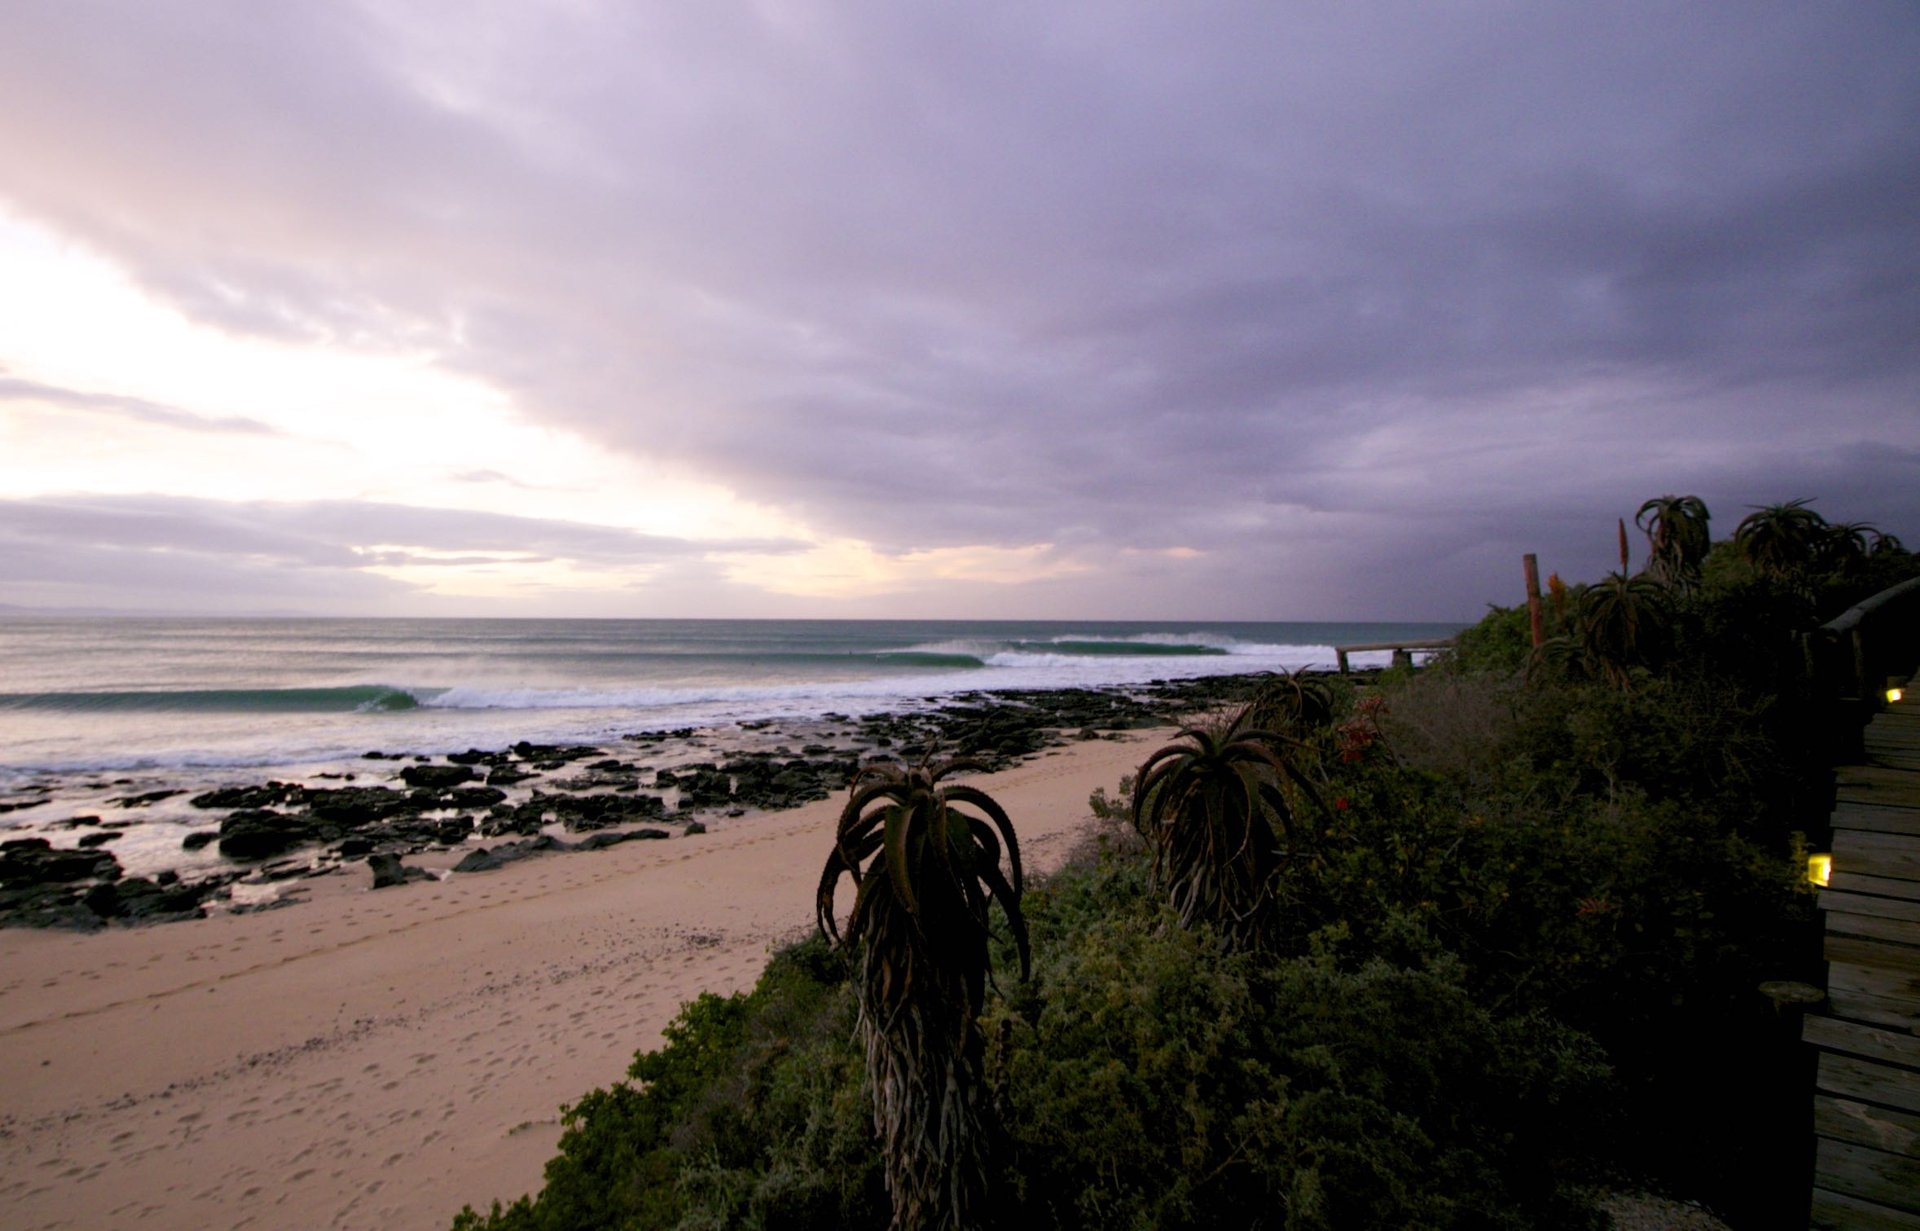 @grant.scholtz's photo of Jeffreys Bay (J-Bay)